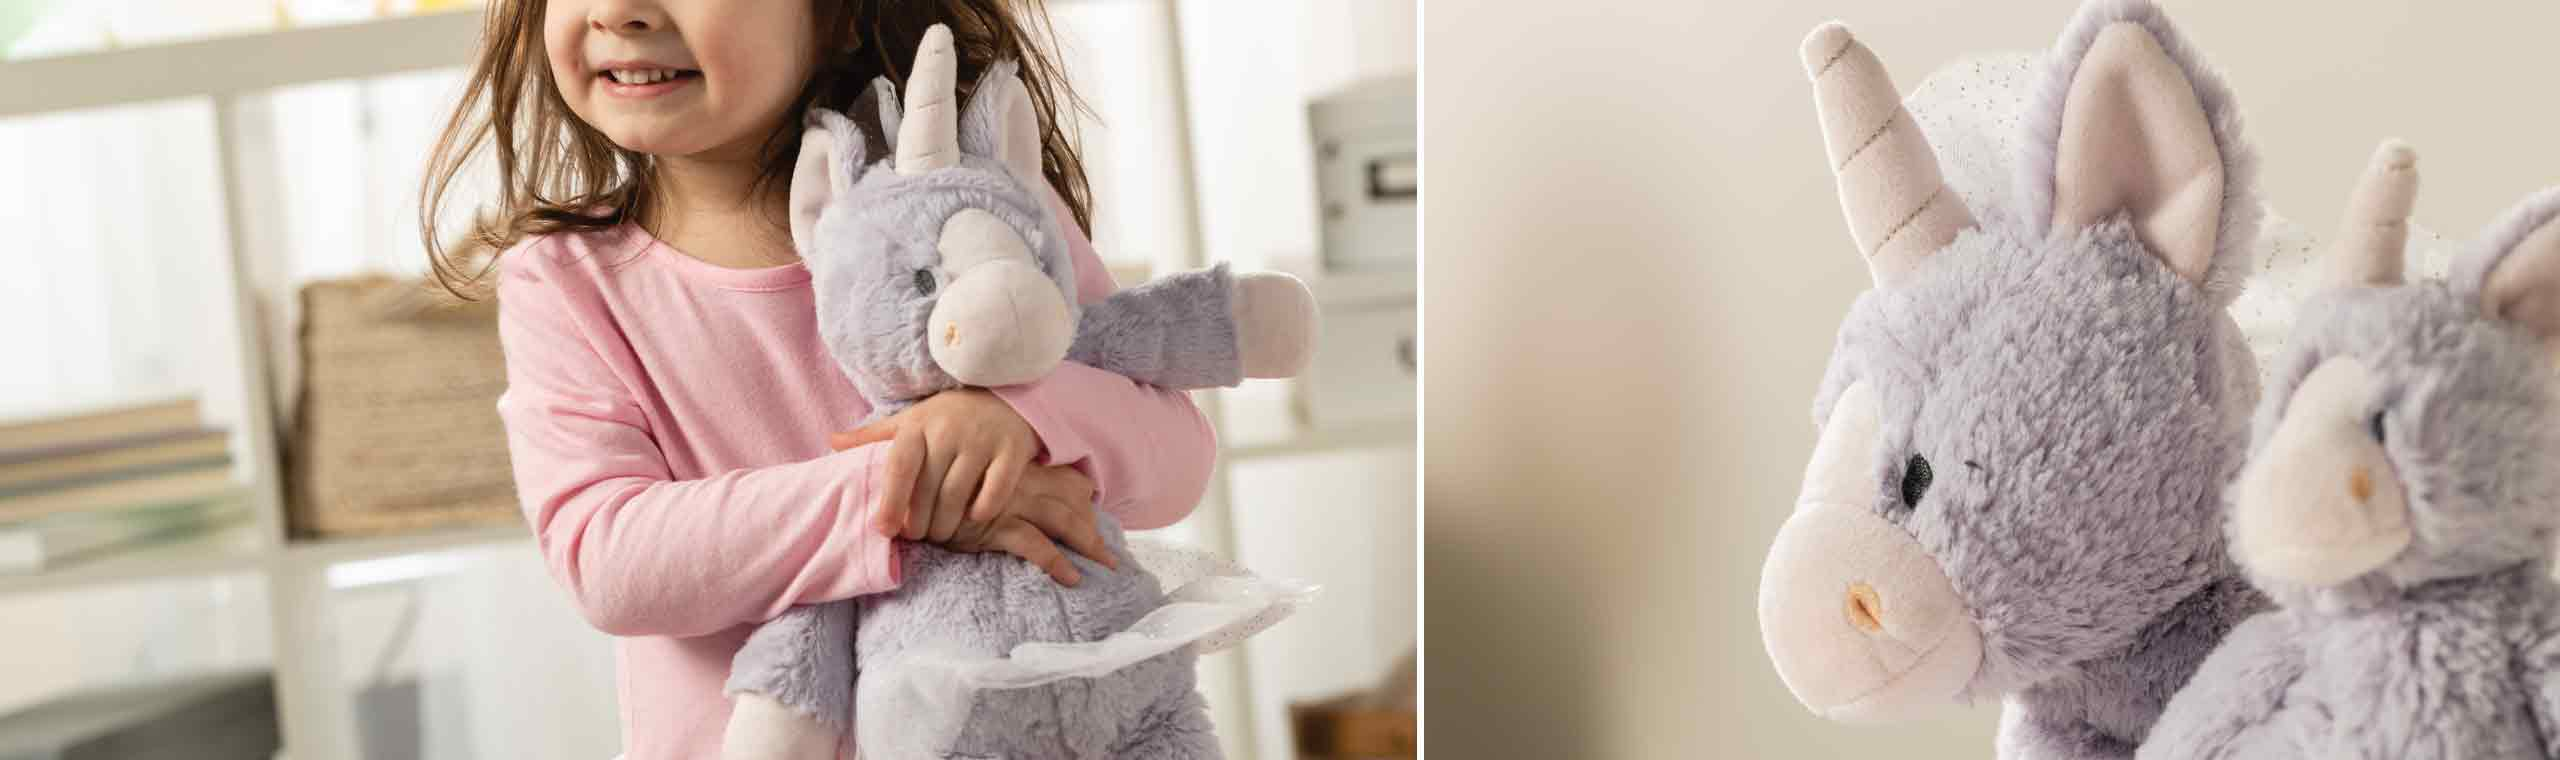 A child holding a Unicorn and another photo of the unicorn upclose to look a the soft purple fur